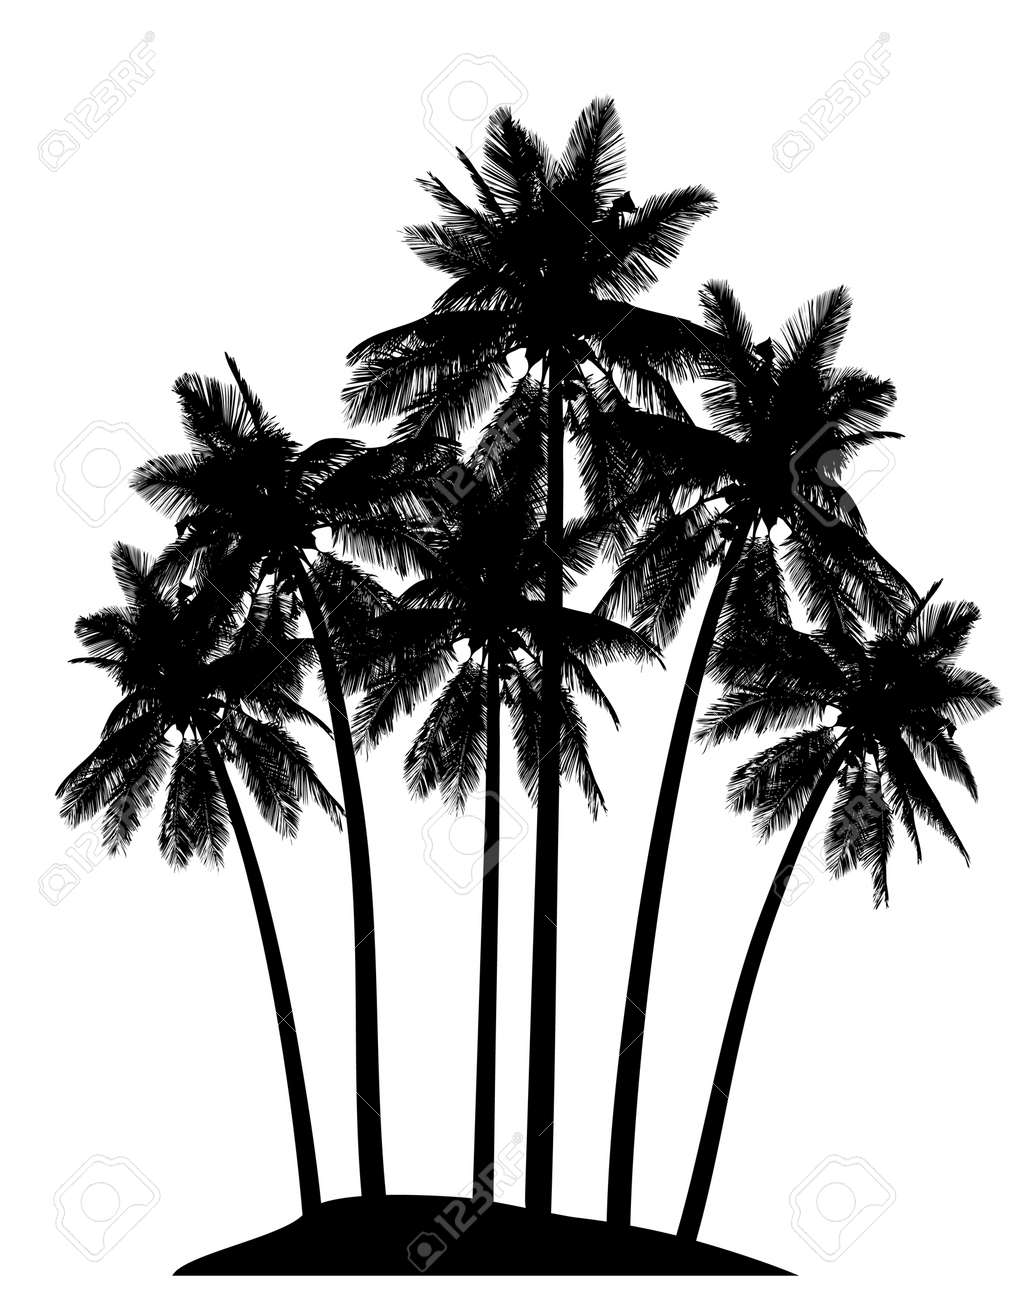 editable vector illustration of palm tree silhouettes royalty free rh 123rf com palm trees vector silhouette palm trees vector free download